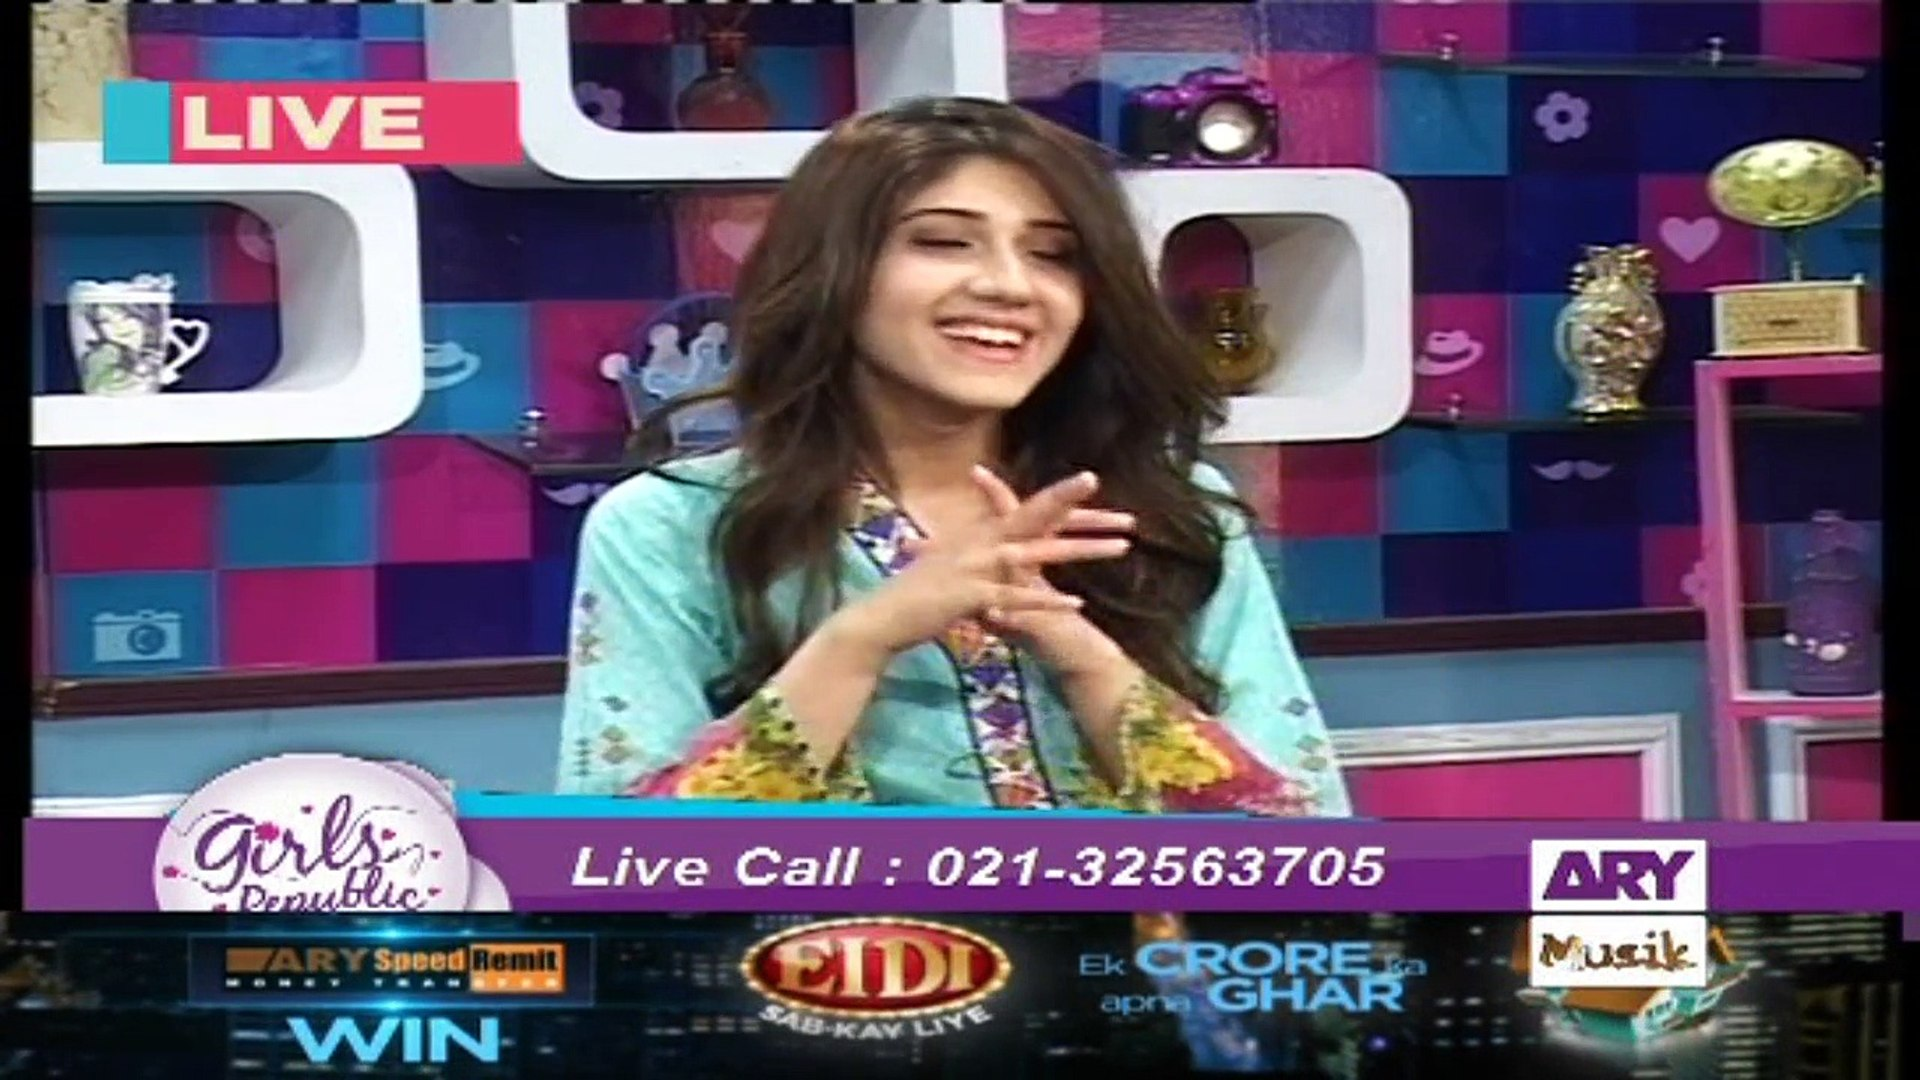 Girls Republic on Ary Musik in High Quality 3rd August 2016